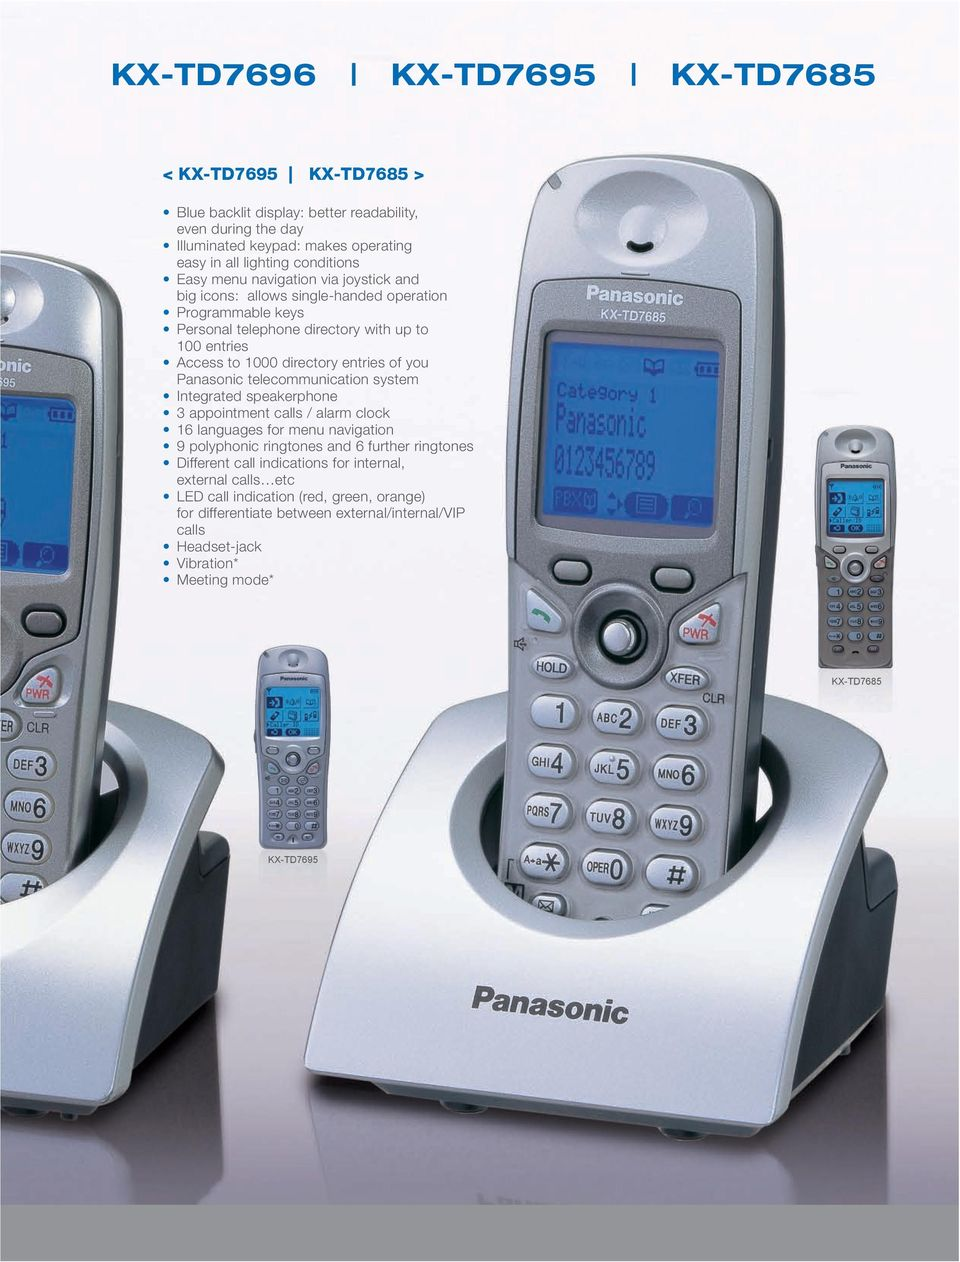 Panasonic telecommunication system Integrated speakerphone appointment calls / alarm clock 16 languages for menu navigation 9 polyphonic ringtones and 6 further ringtones Different call